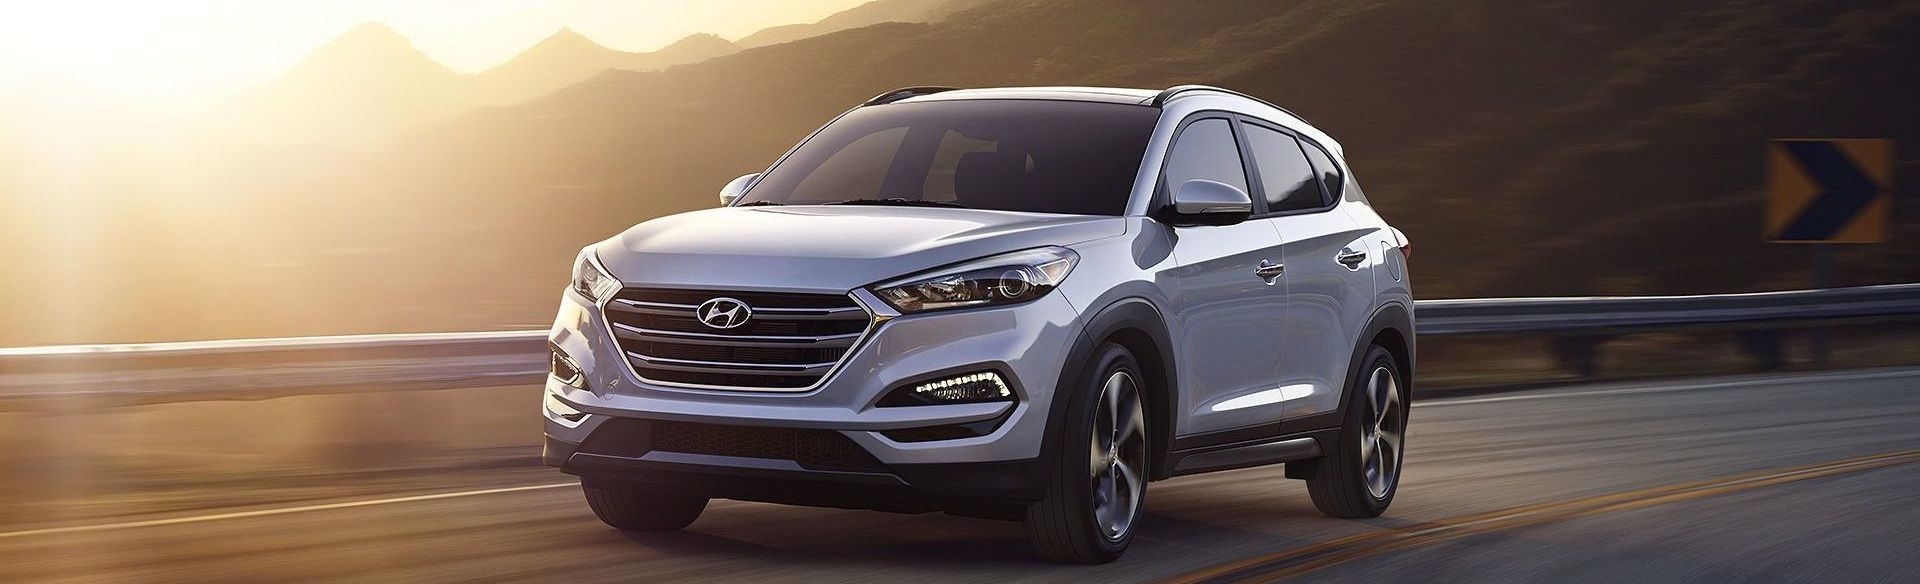 2017 Hyundai Tucson Awards in Capitol Heights, MD